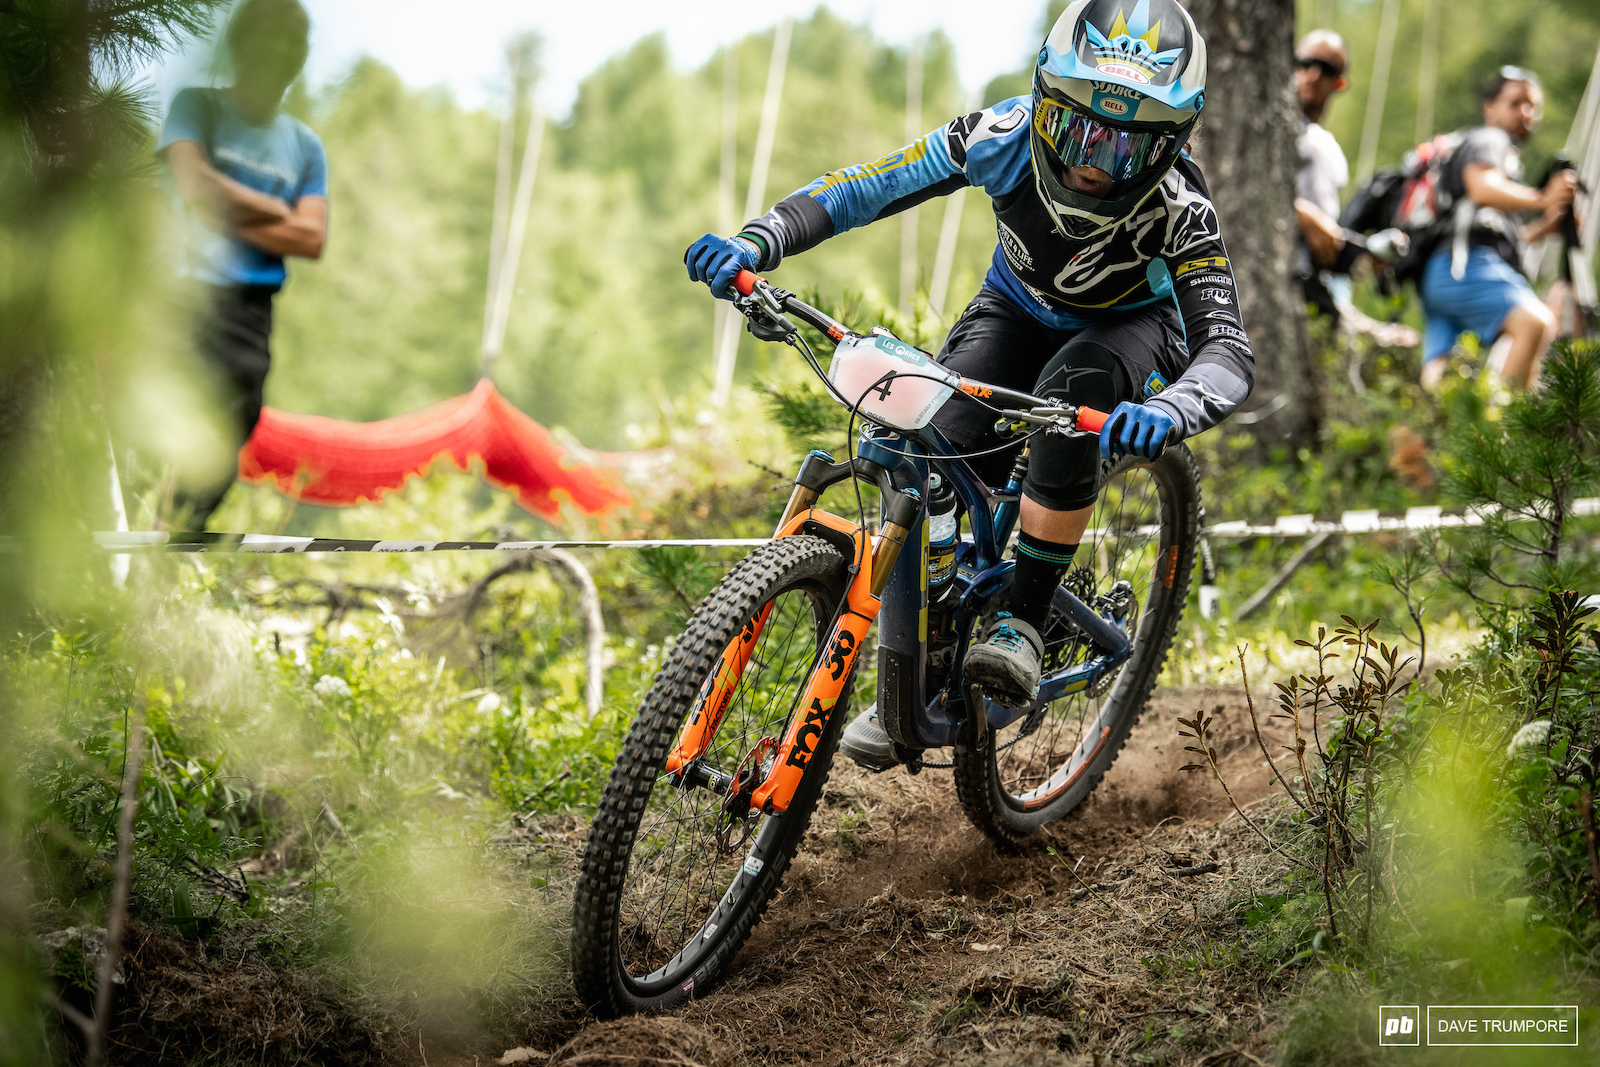 Noga Korem s run of podium appearances came top an end this weekend